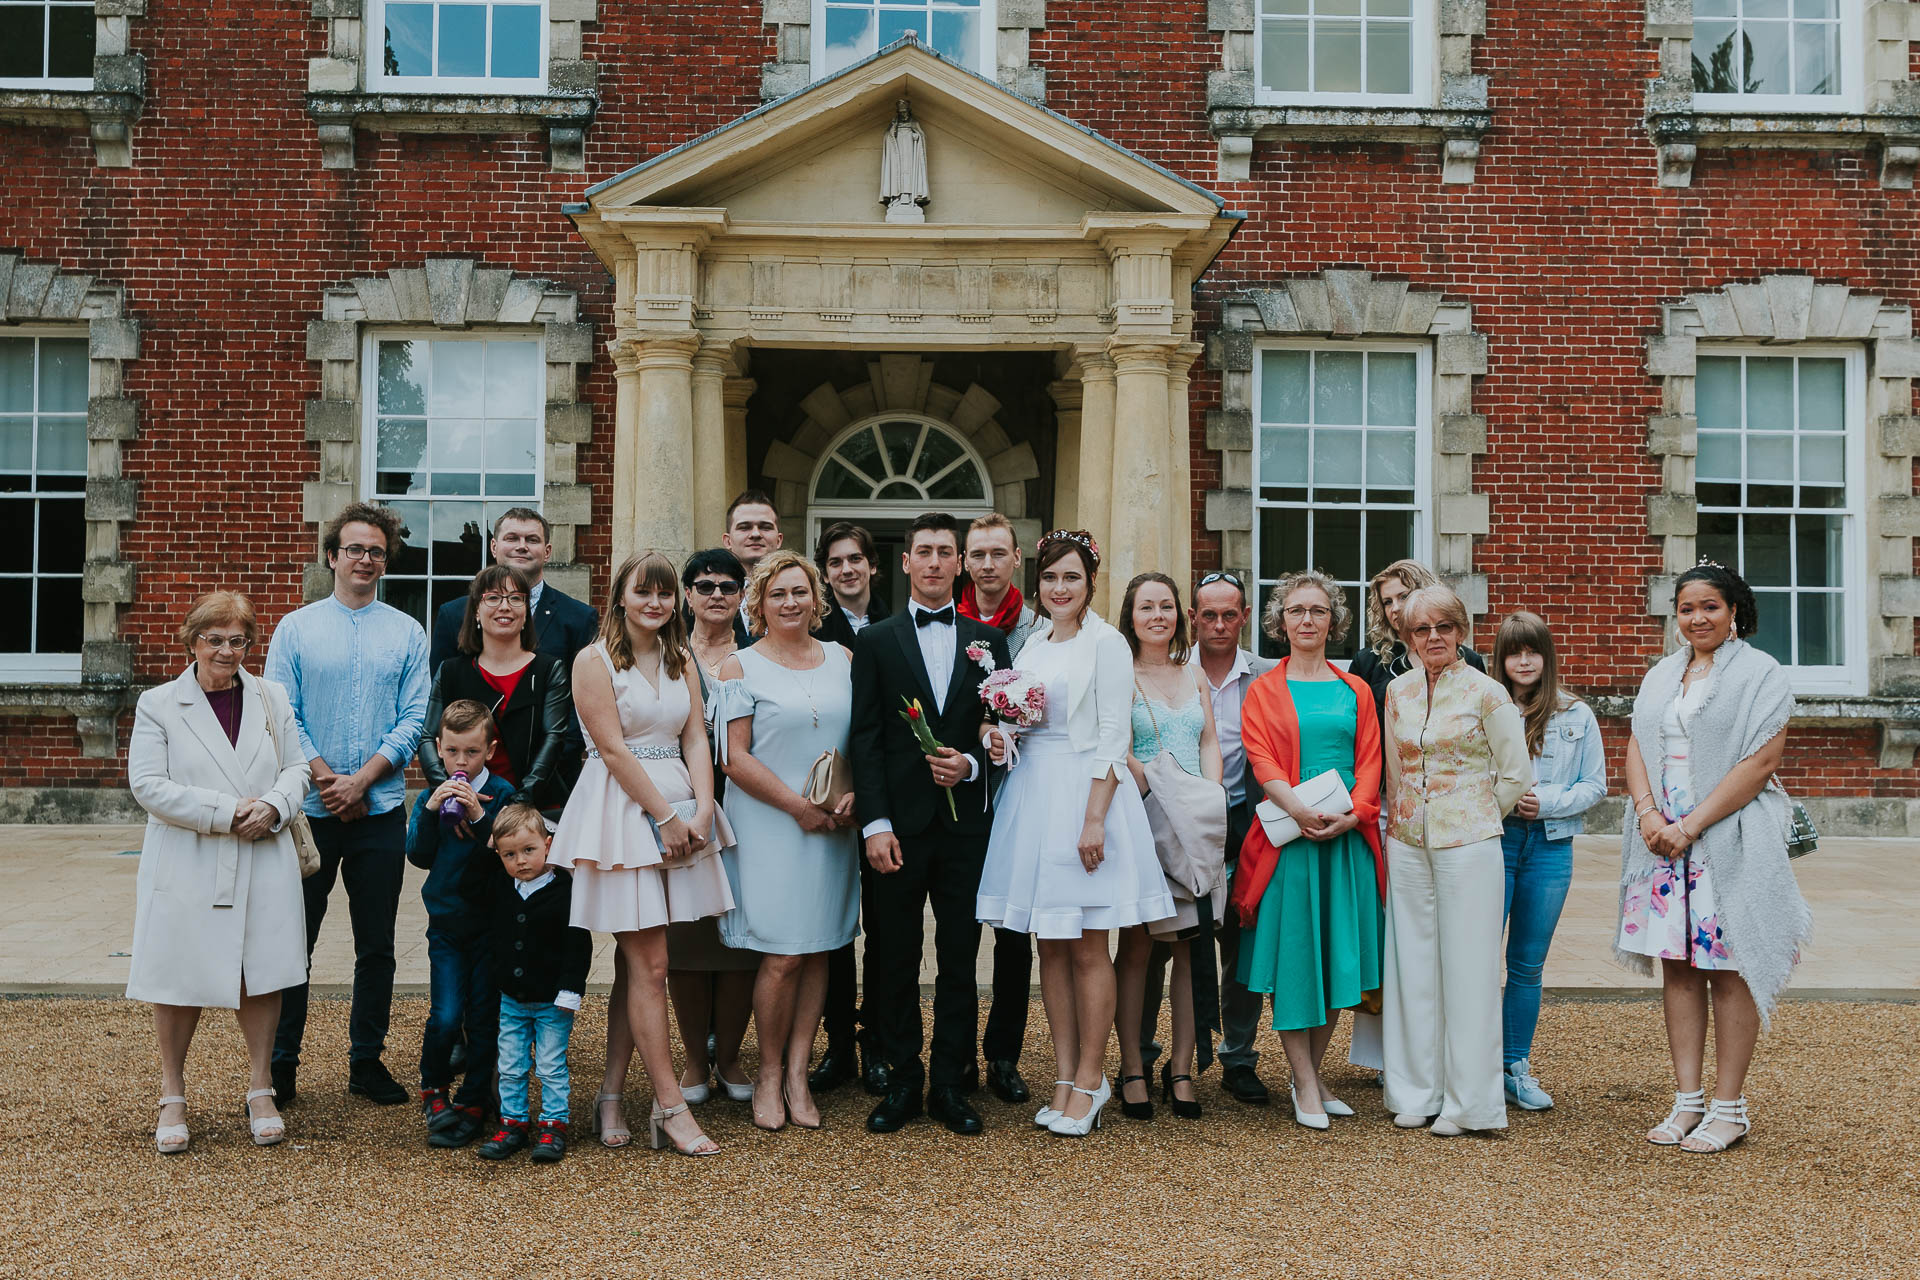 Group photo outside the Salisbury Registry Office